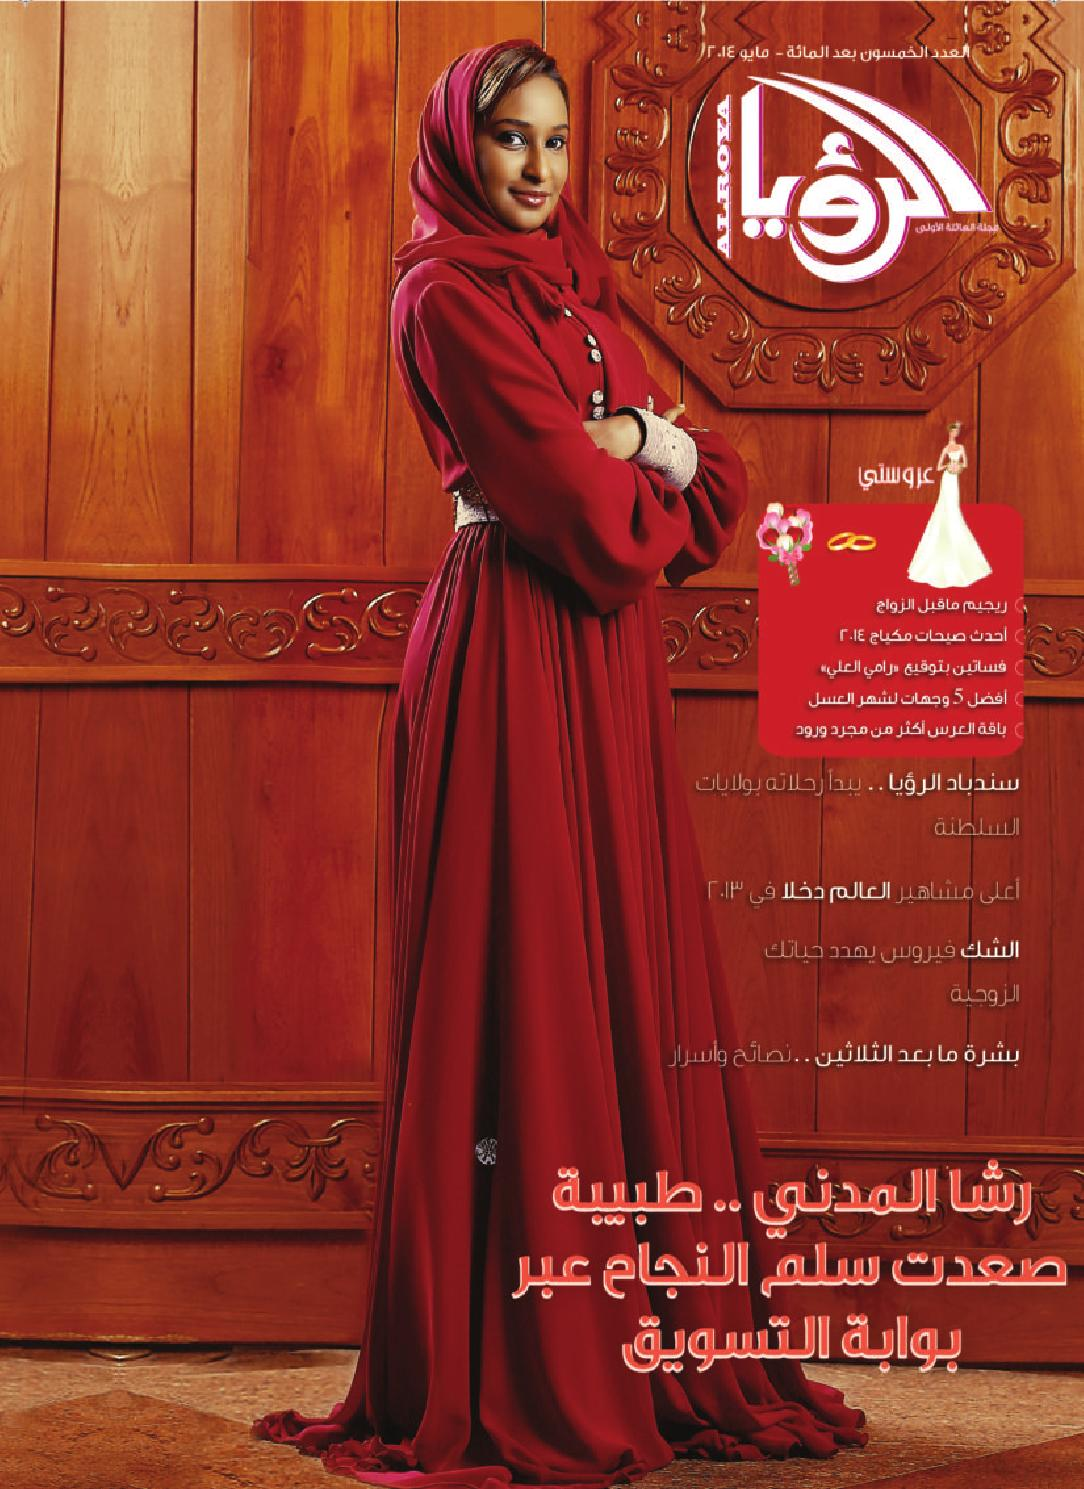 ae6484c57d7c9 Alroya Magazine May 2014 by ALROYA Magazine - issuu